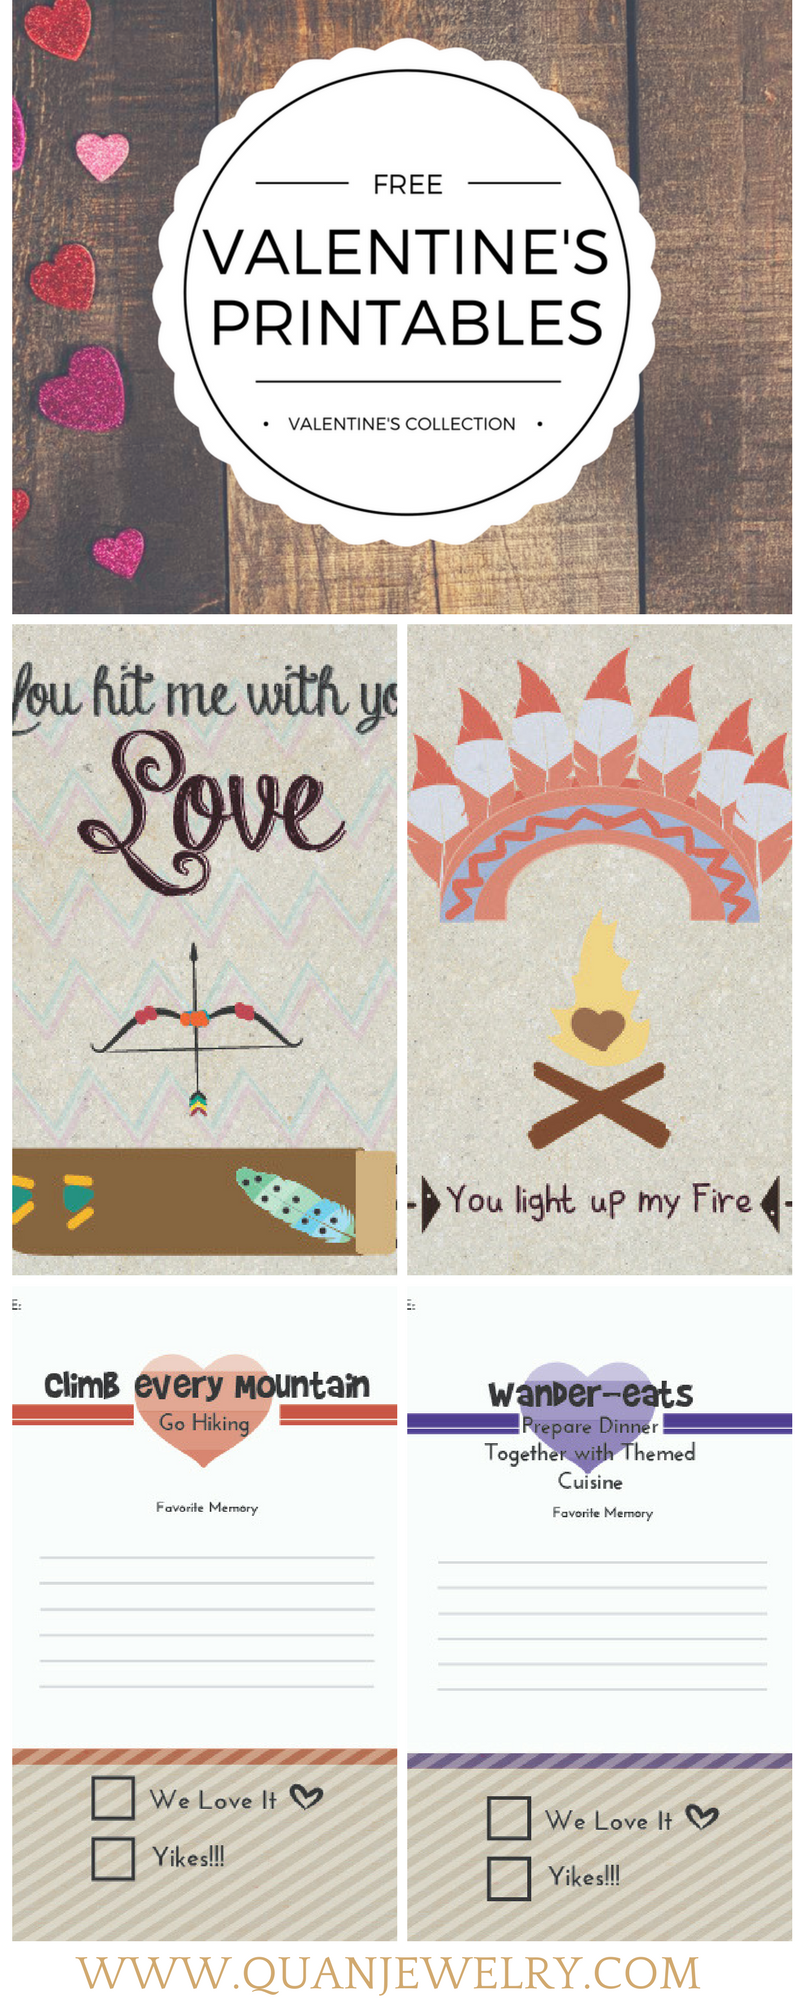 Happy hearts month! #February is here and what else you could think of other than the #Valentine's Day. This month is not just for couples but for singles too. Celebrate #LoveMonth with these free printables for couples and singles out there! download and print for #Free! #Printables #Valentinesday #ecards